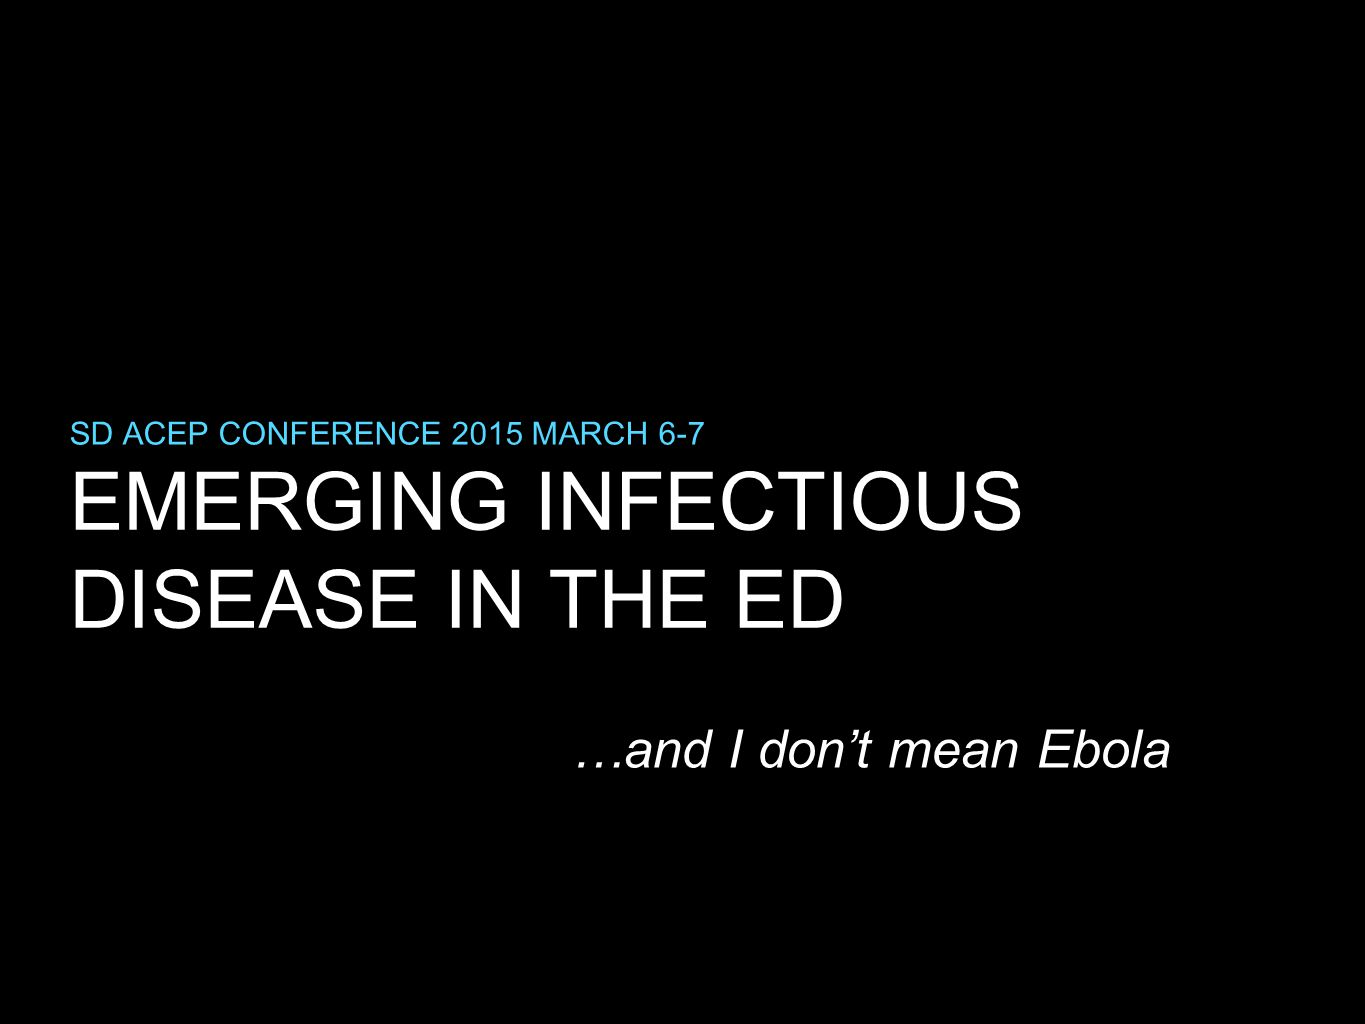 EMERGING INFECTIOUS DISEASE IN THE ED SD ACEP CONFERENCE 2015 MARCH 6-7 …and I don't mean Ebola